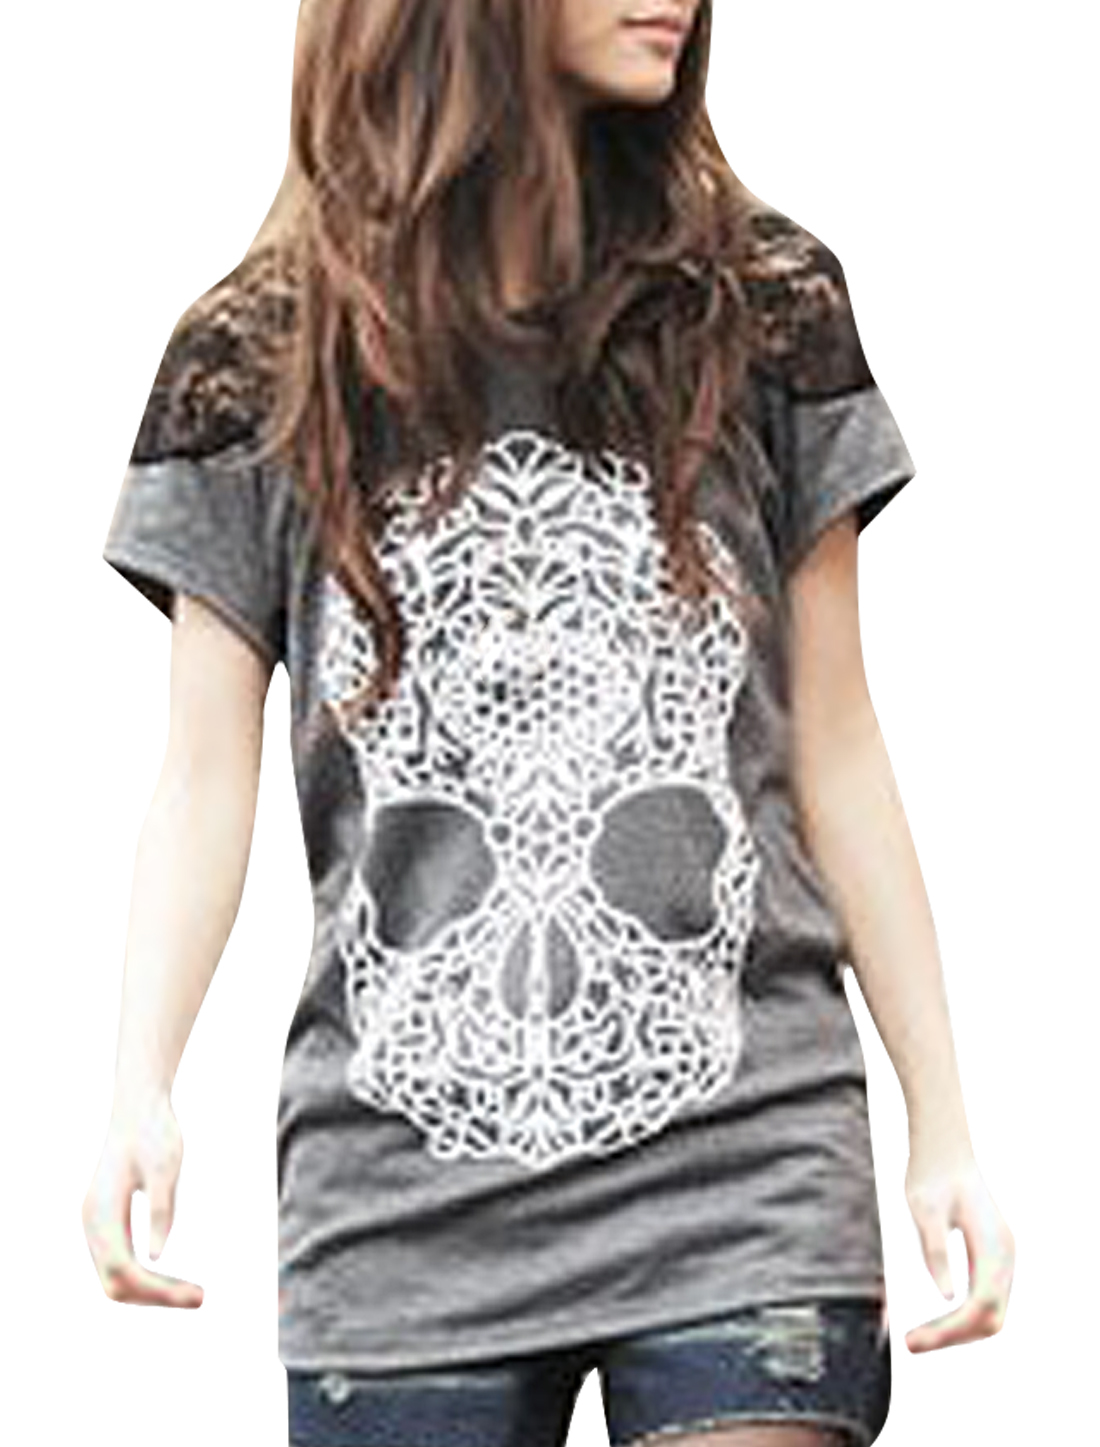 Scoop Neck Skull Pattern Front Light Gray Pullover Shirt S for Ladies